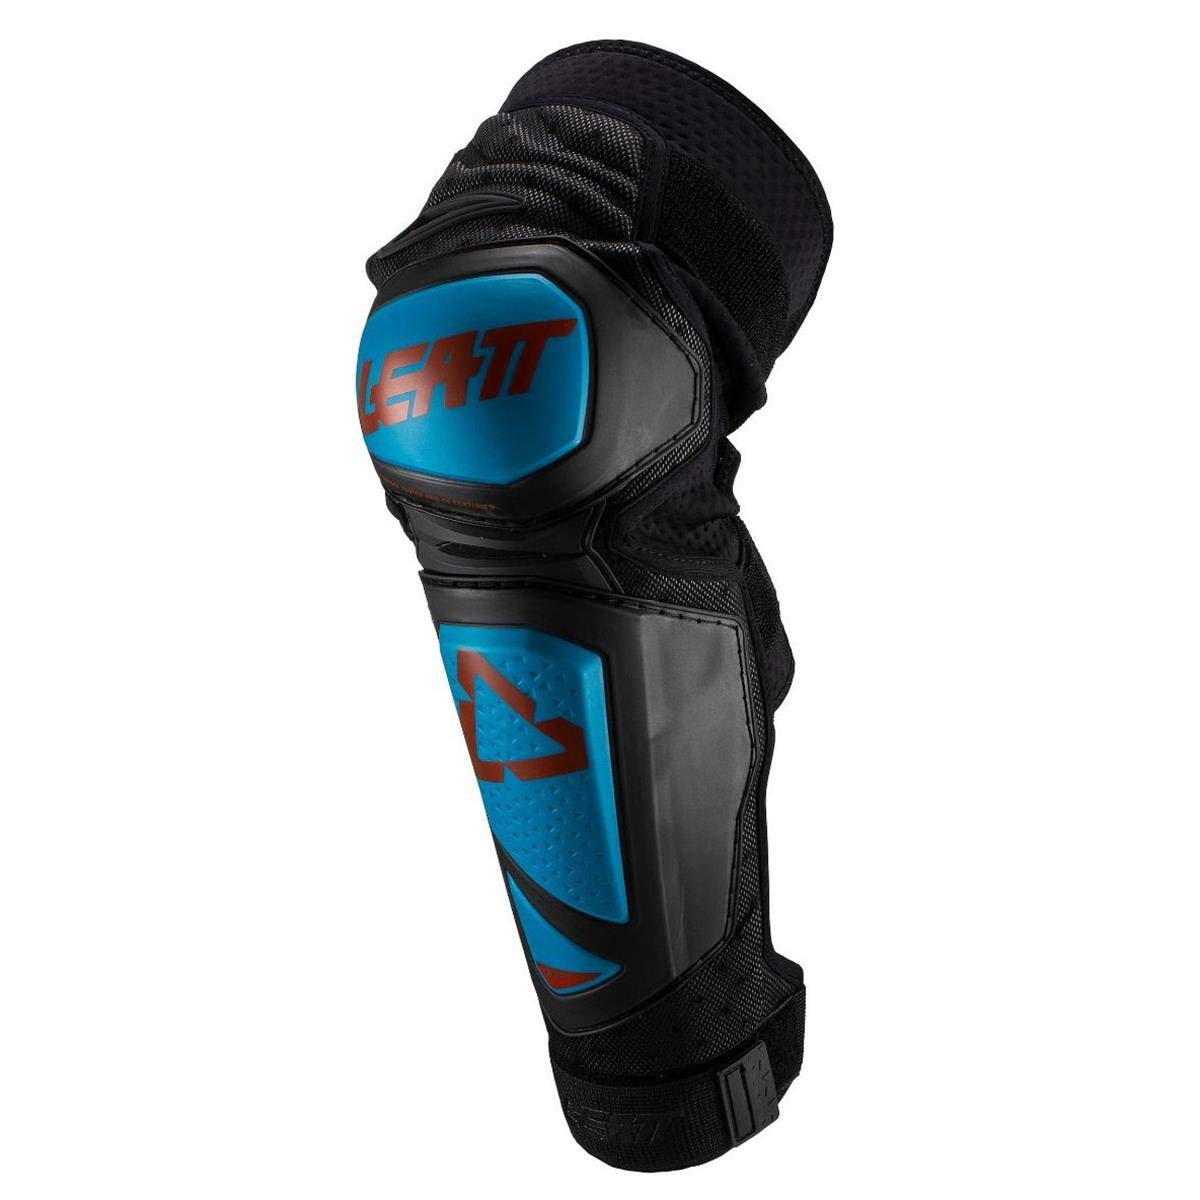 Leatt 3DF Hybrid Ext Adult Off-Road BMX Cycling Knee & Shin Guard - Black/Large/X-Large 5019400721